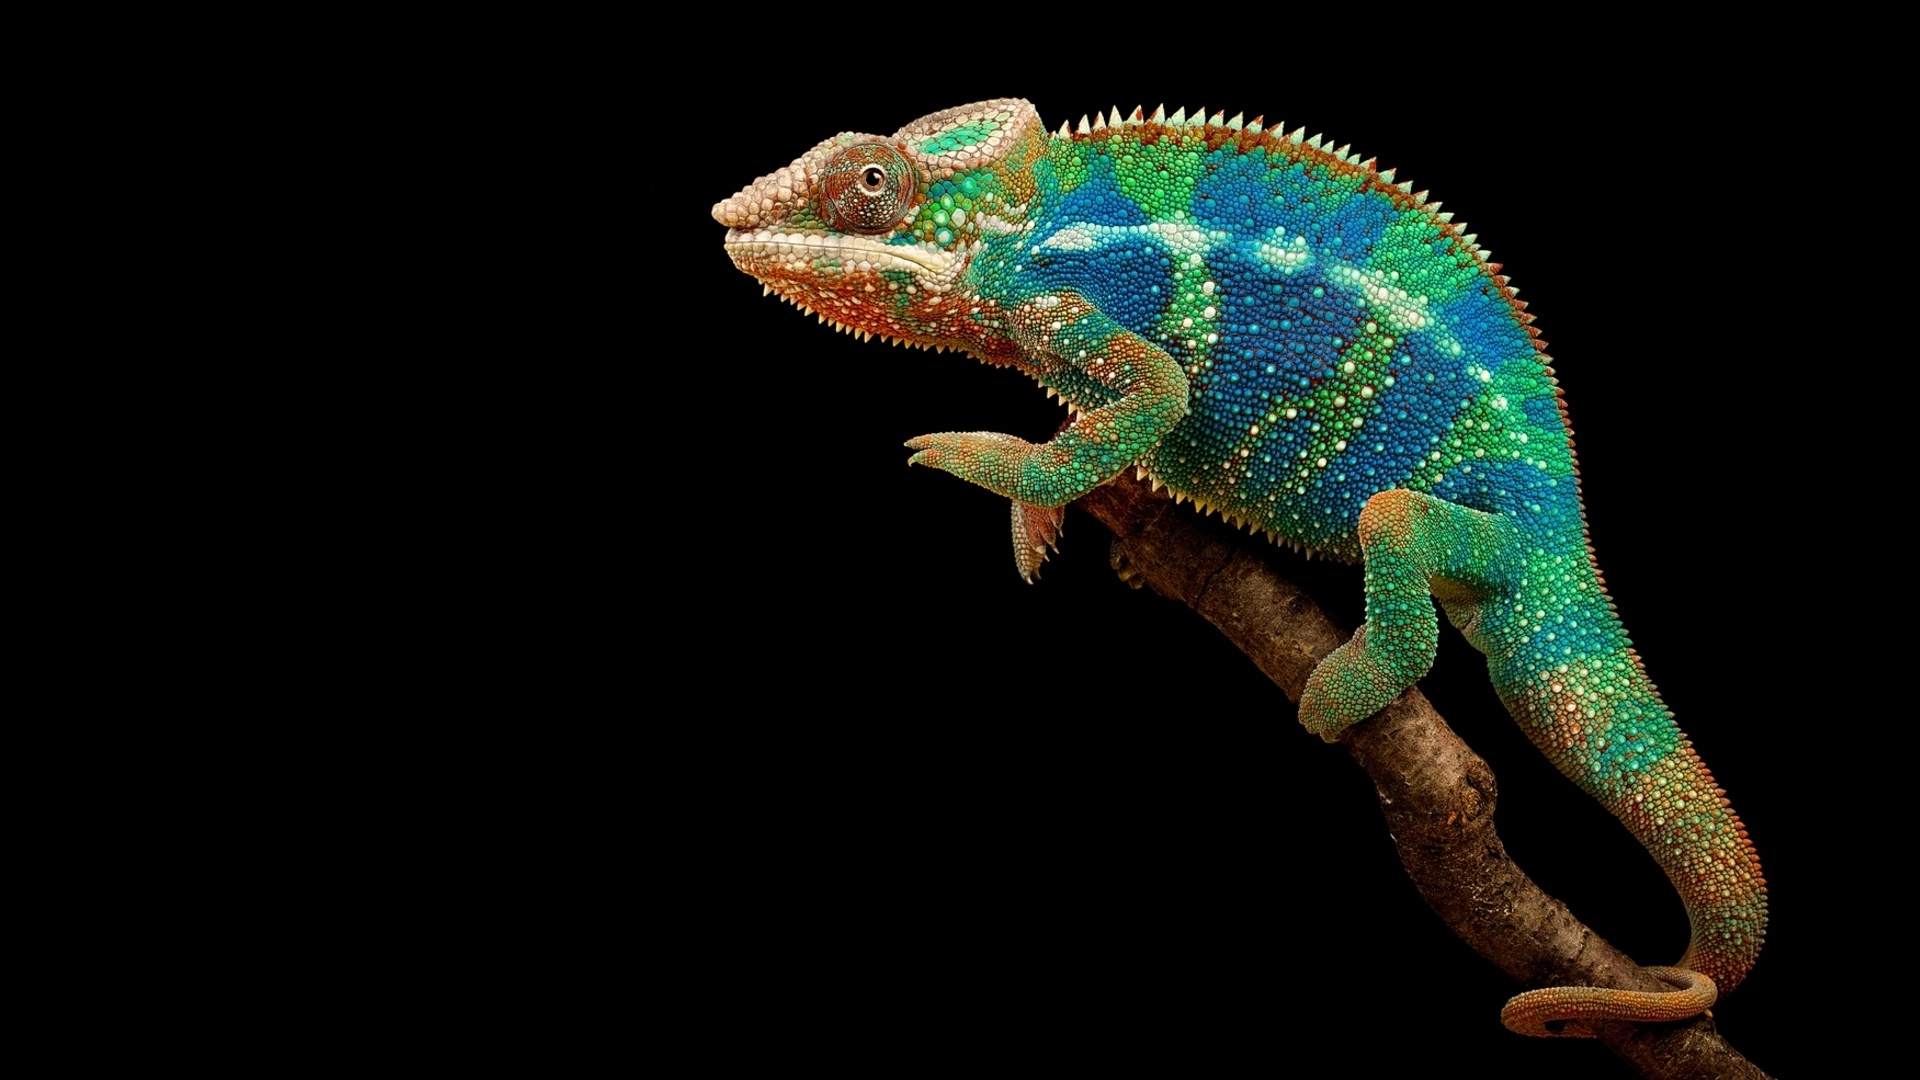 Colorful Chameleon Wallpaper 34527 1920x1080 Px